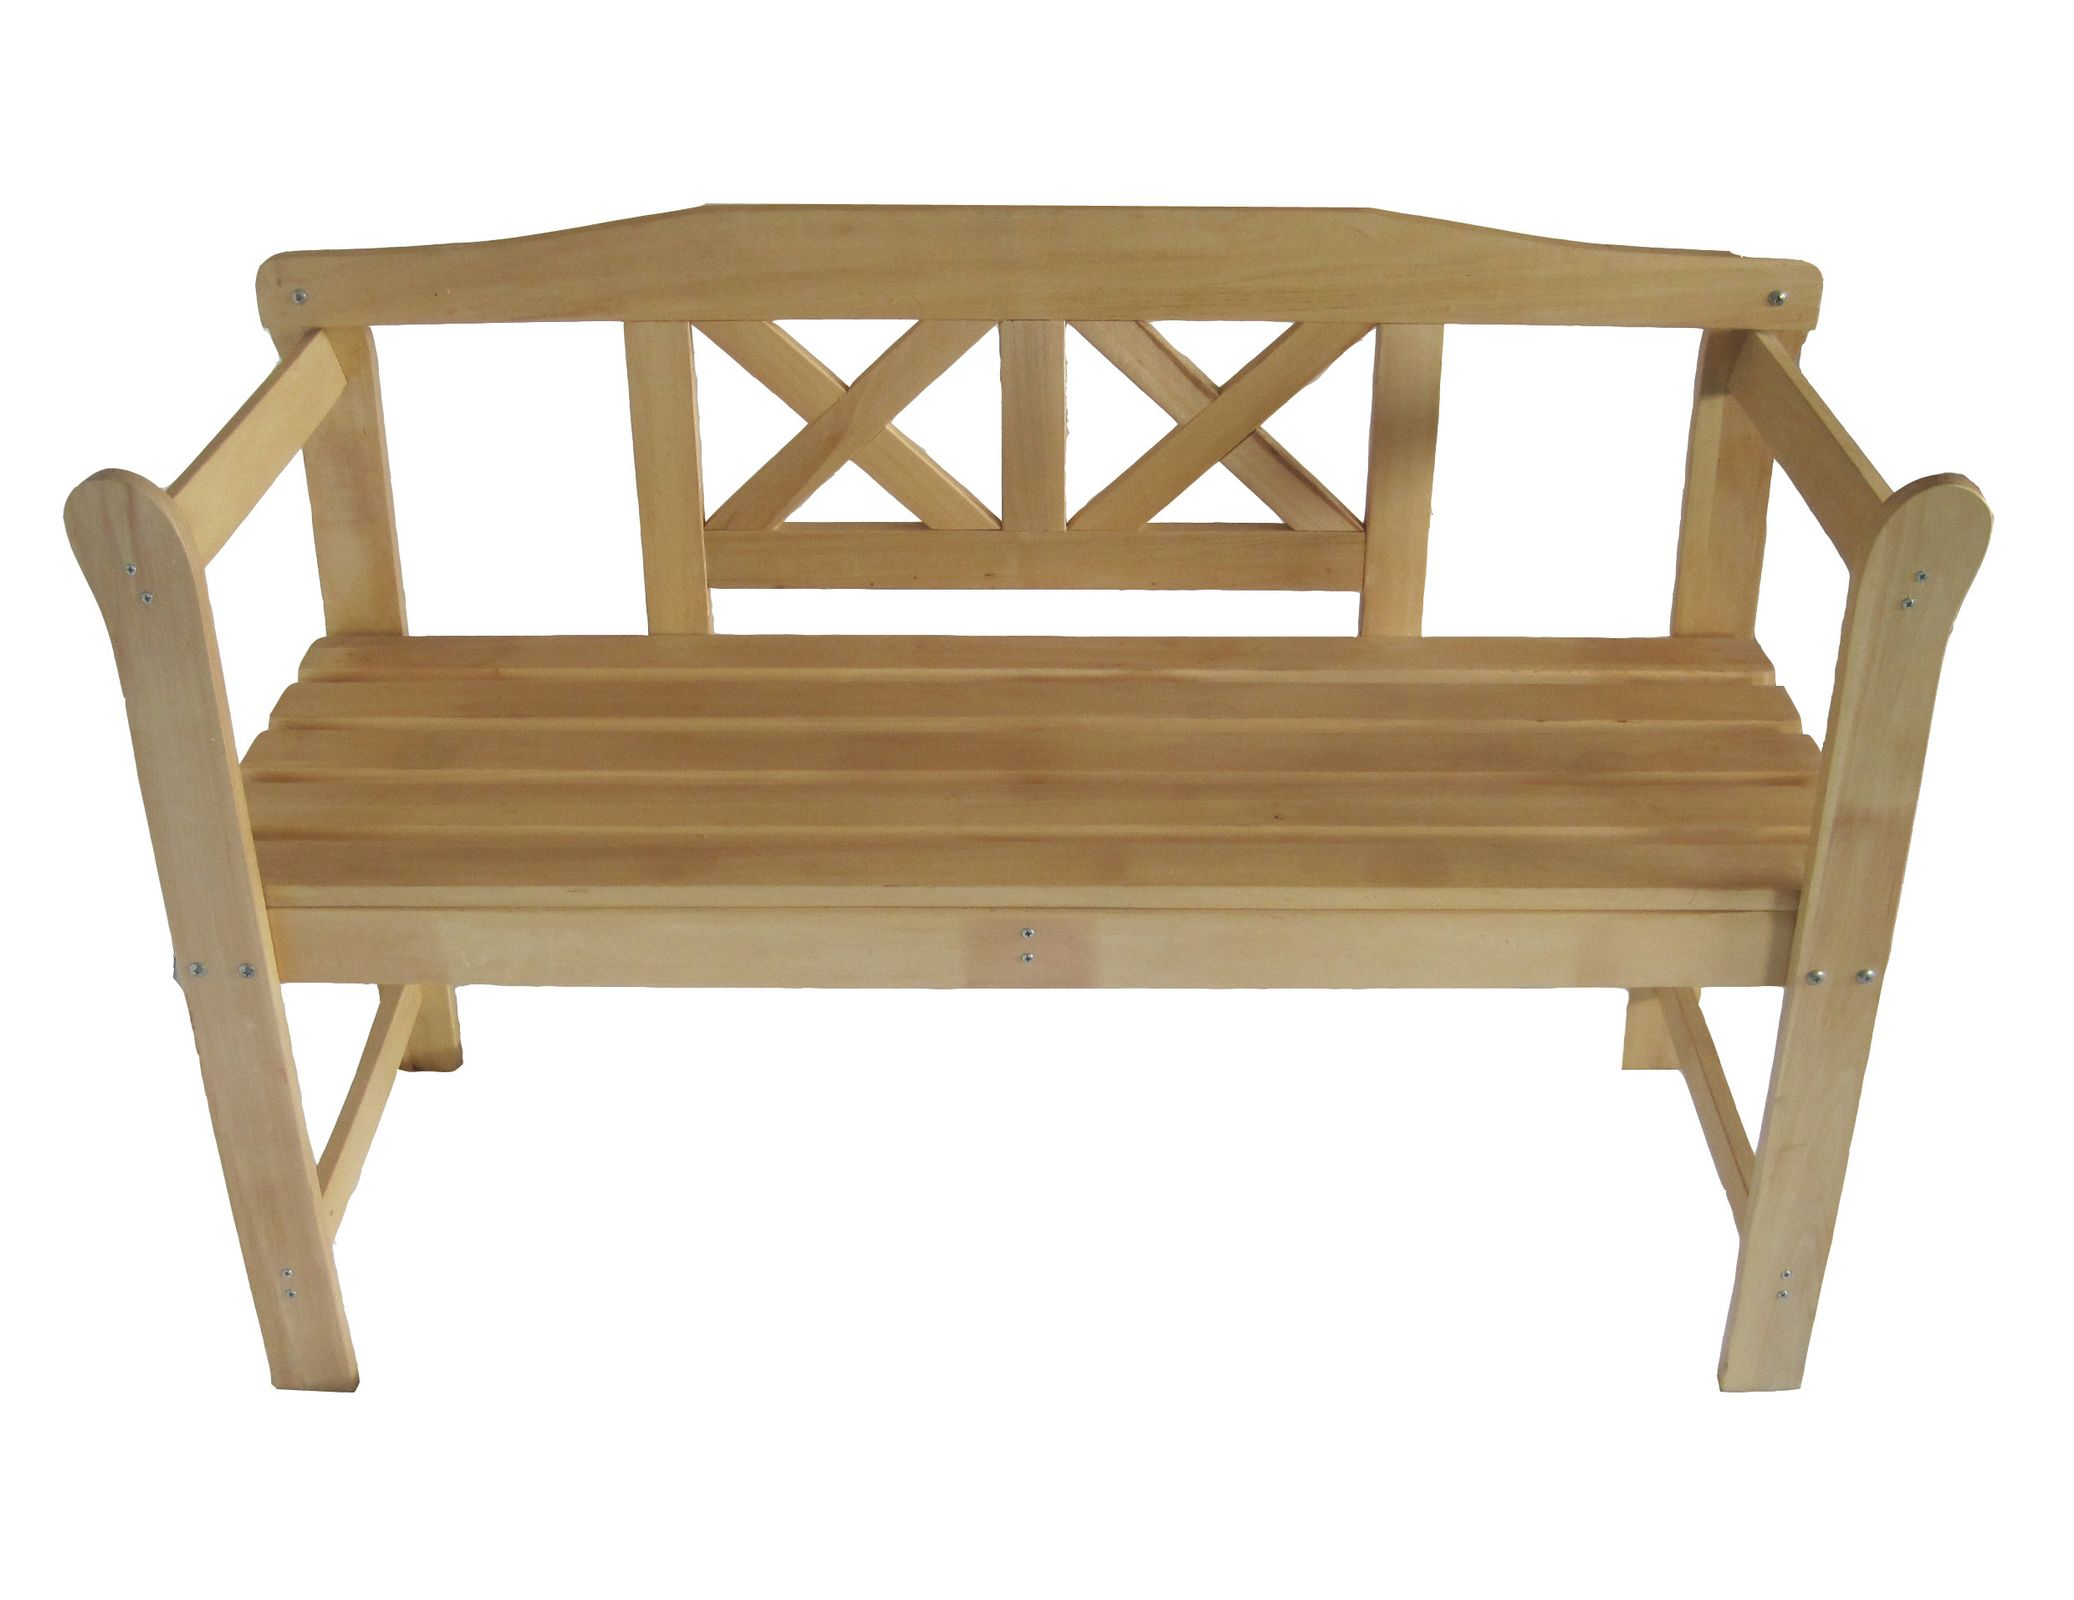 Outdoor Home Wooden 2 Seat Seater Garden Bench Furniture Patio Park Hardwood 072 Ebay